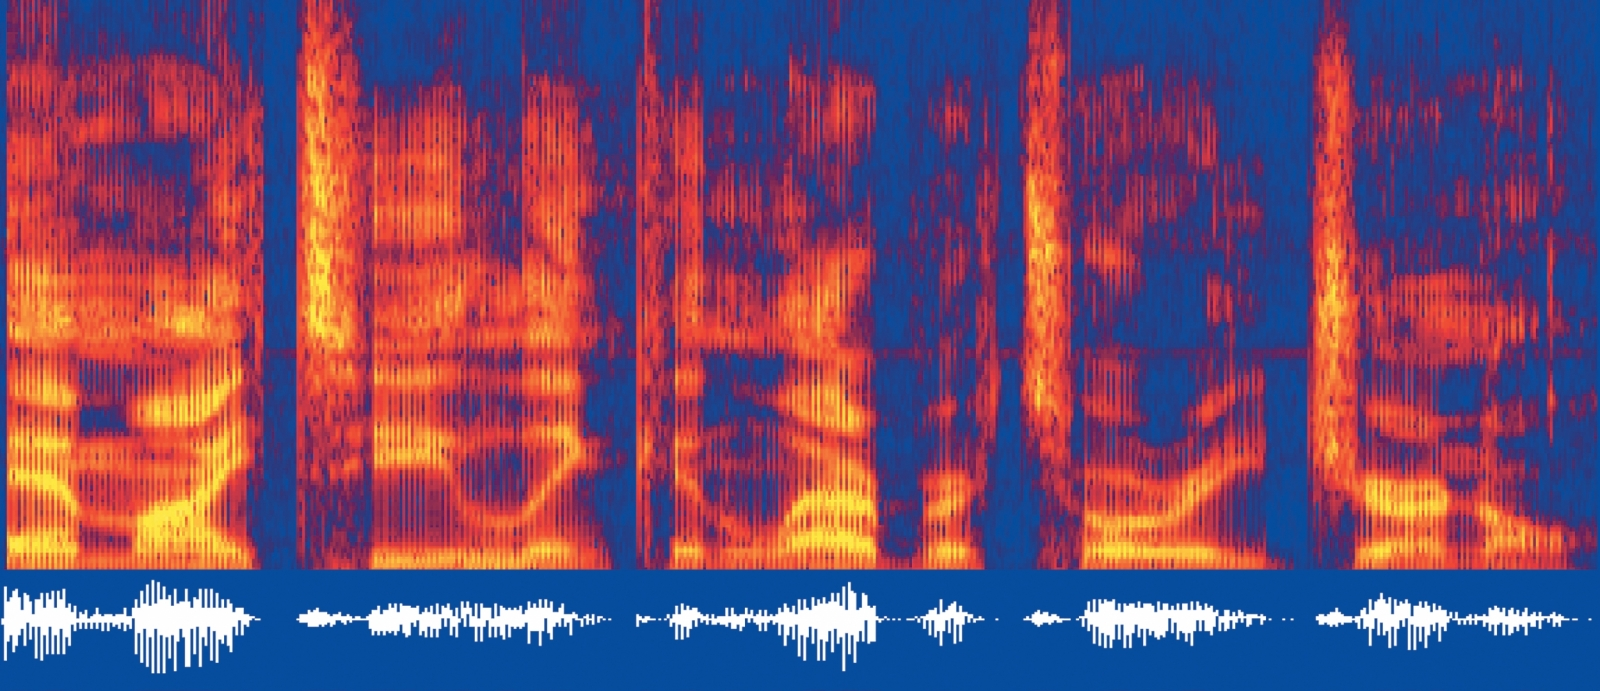 The image shows the underlying time-frequency characteristics of speech that are exploited by automatic recognition systems.